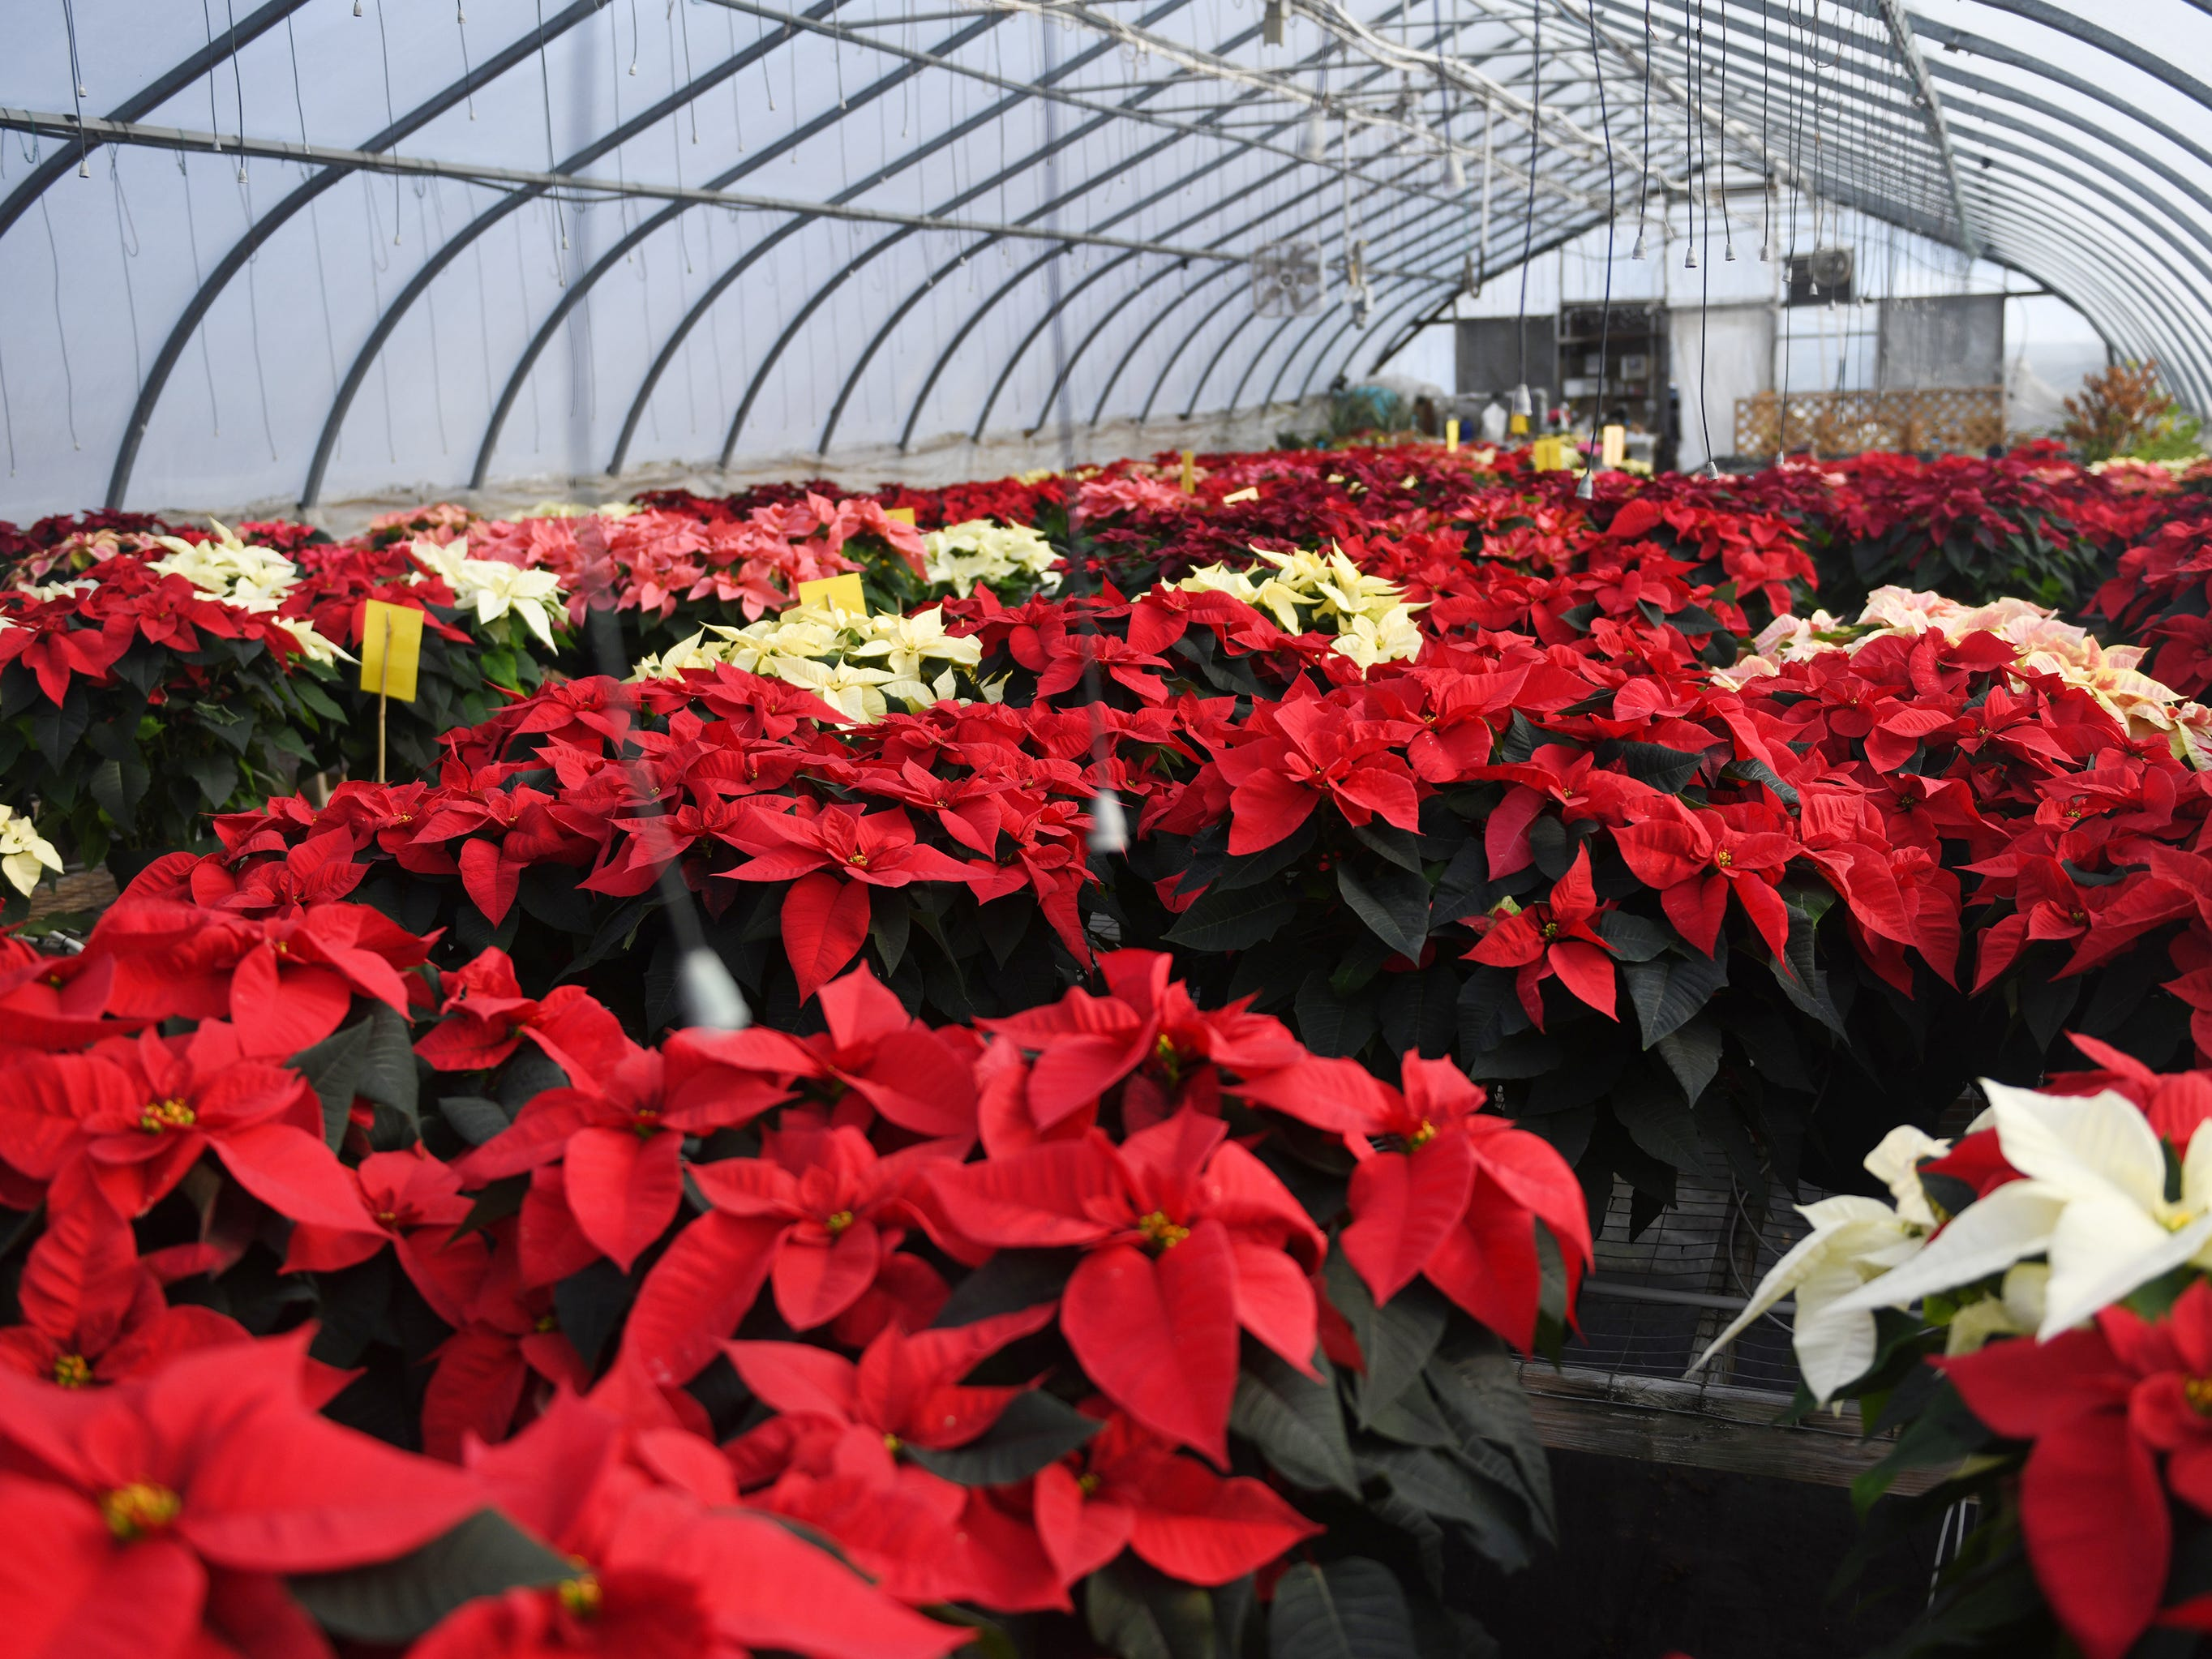 "Tim and Patty Huffman of Huffman Farms in Vineland begin to grow poinsettias in July so they are ready for the Christmas season. The farm produces over 7,000 plants ranging from 4.5"" to 14"" in size. The poinsettias are available in several different colors including red, white, burgundy, pink and even some speckled varieties. Monday, December 10, 2018."